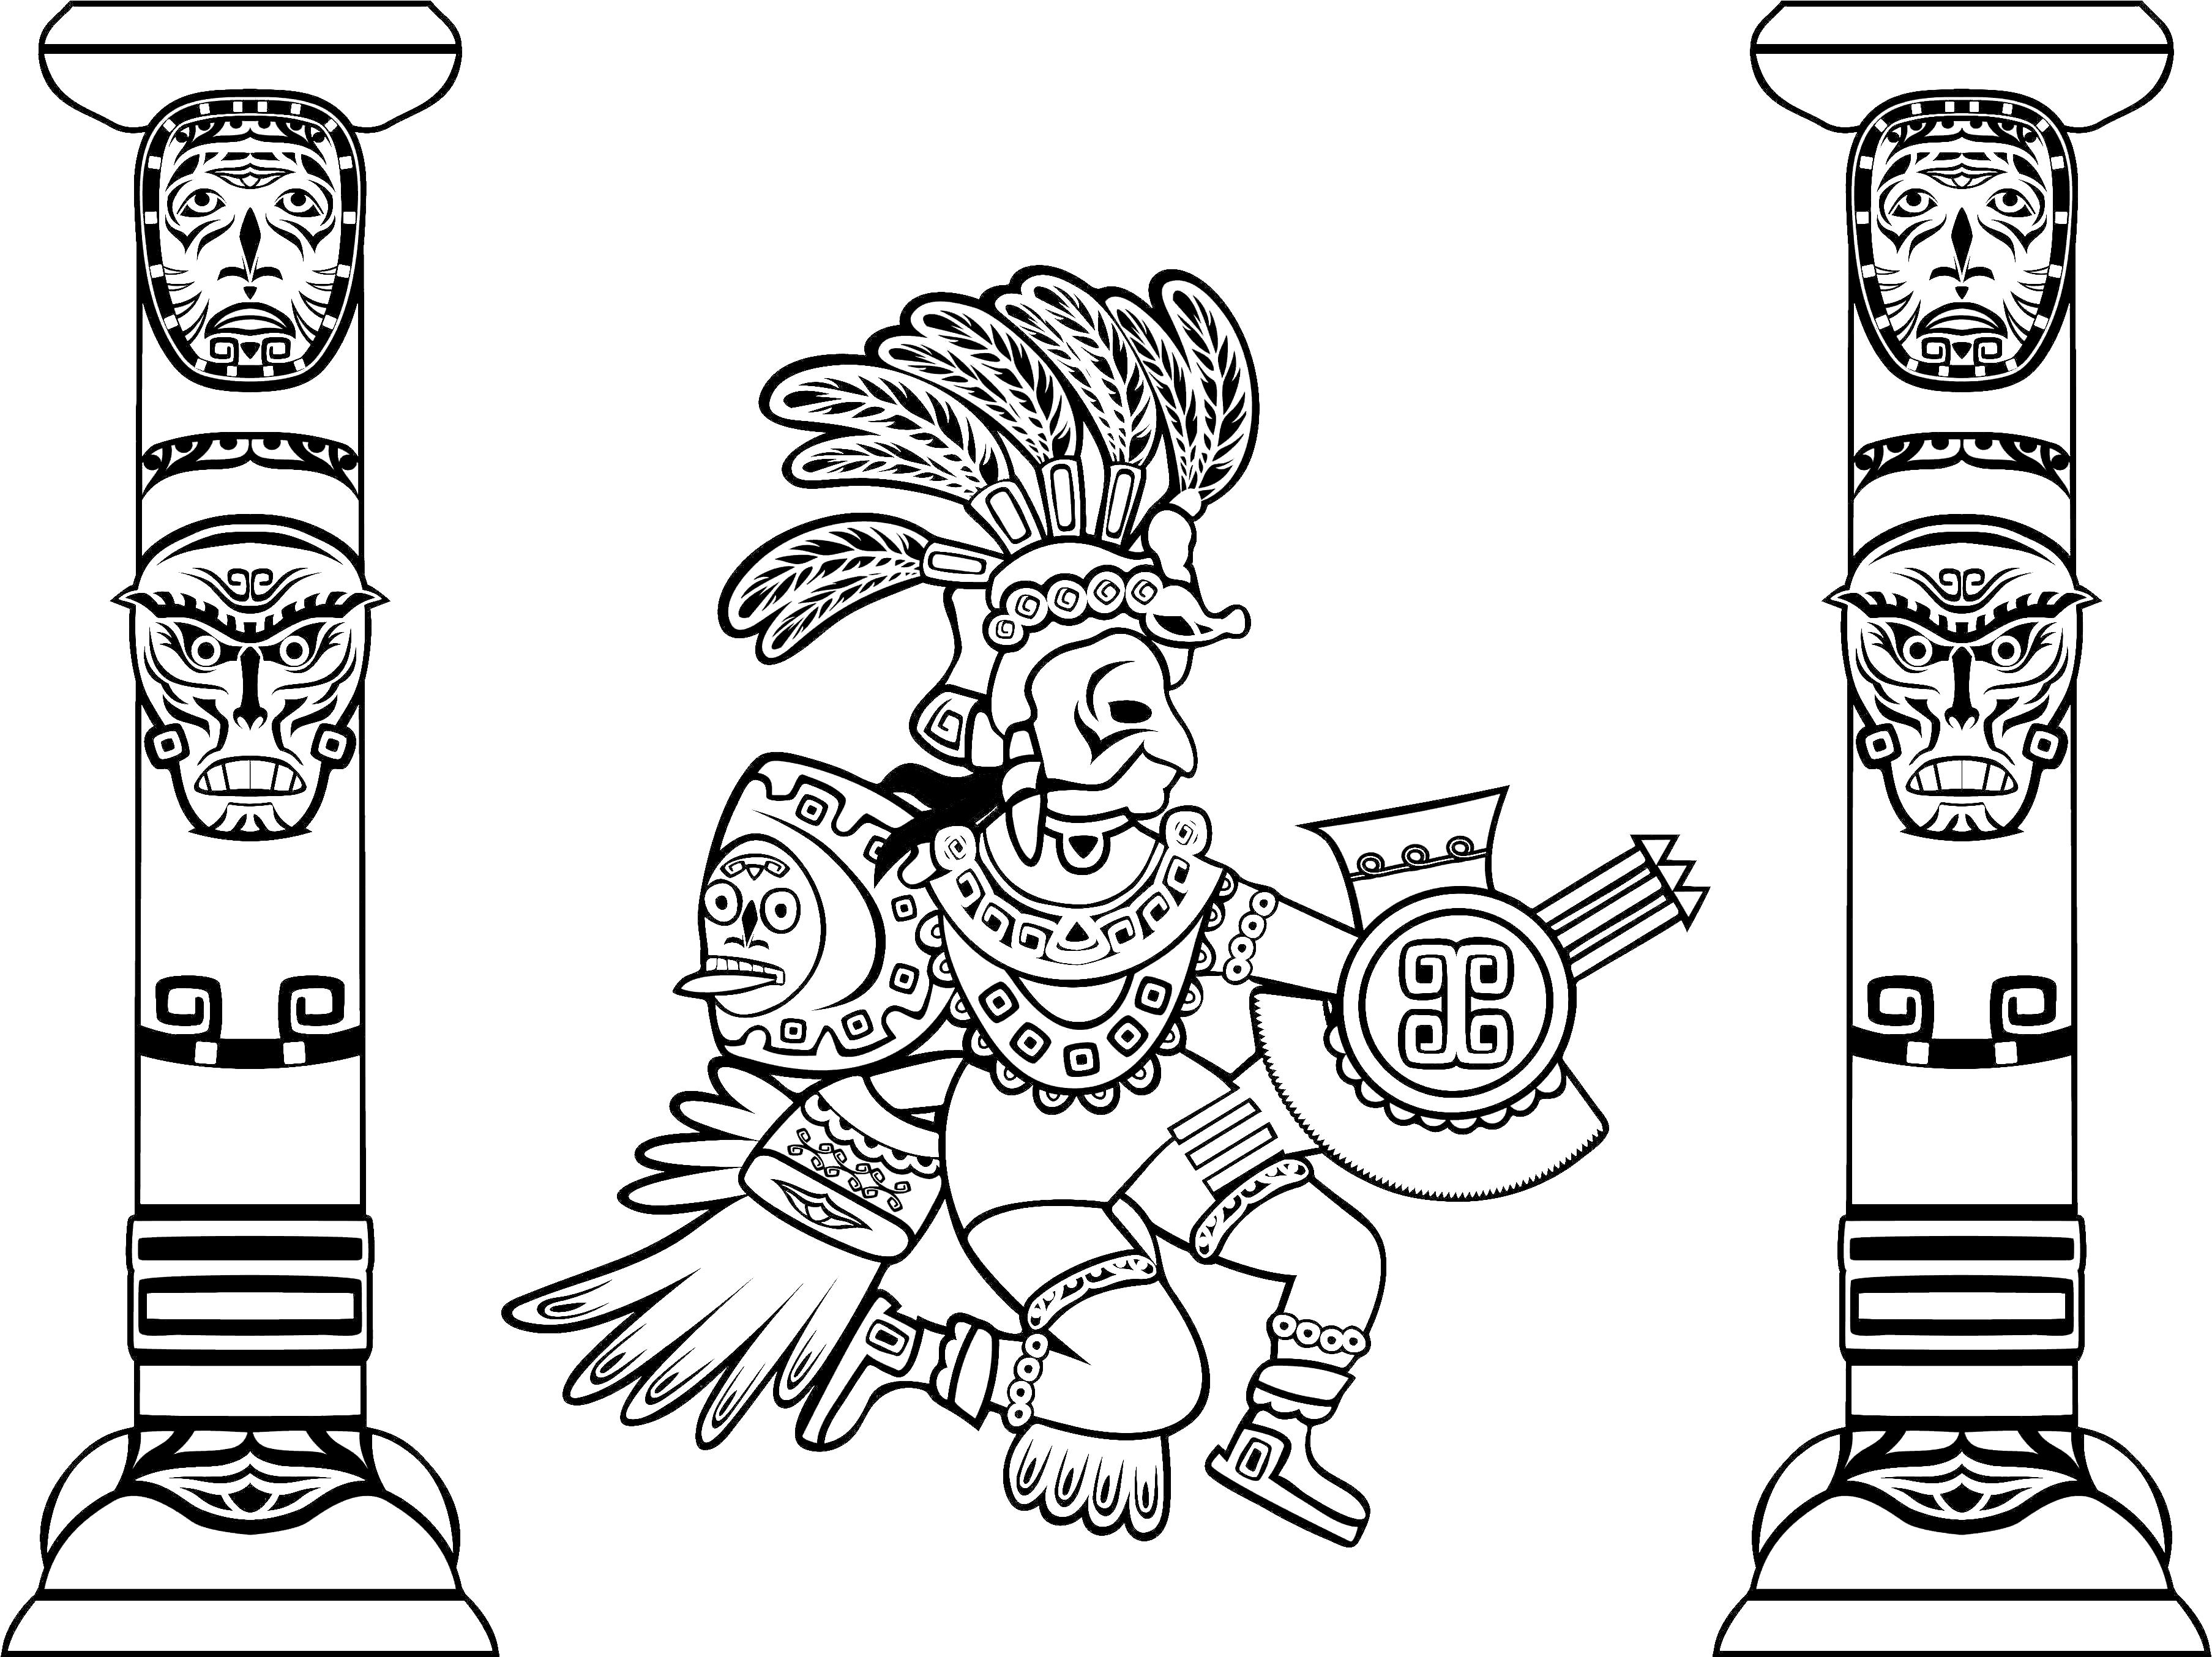 Masks coloring page to print and color for free